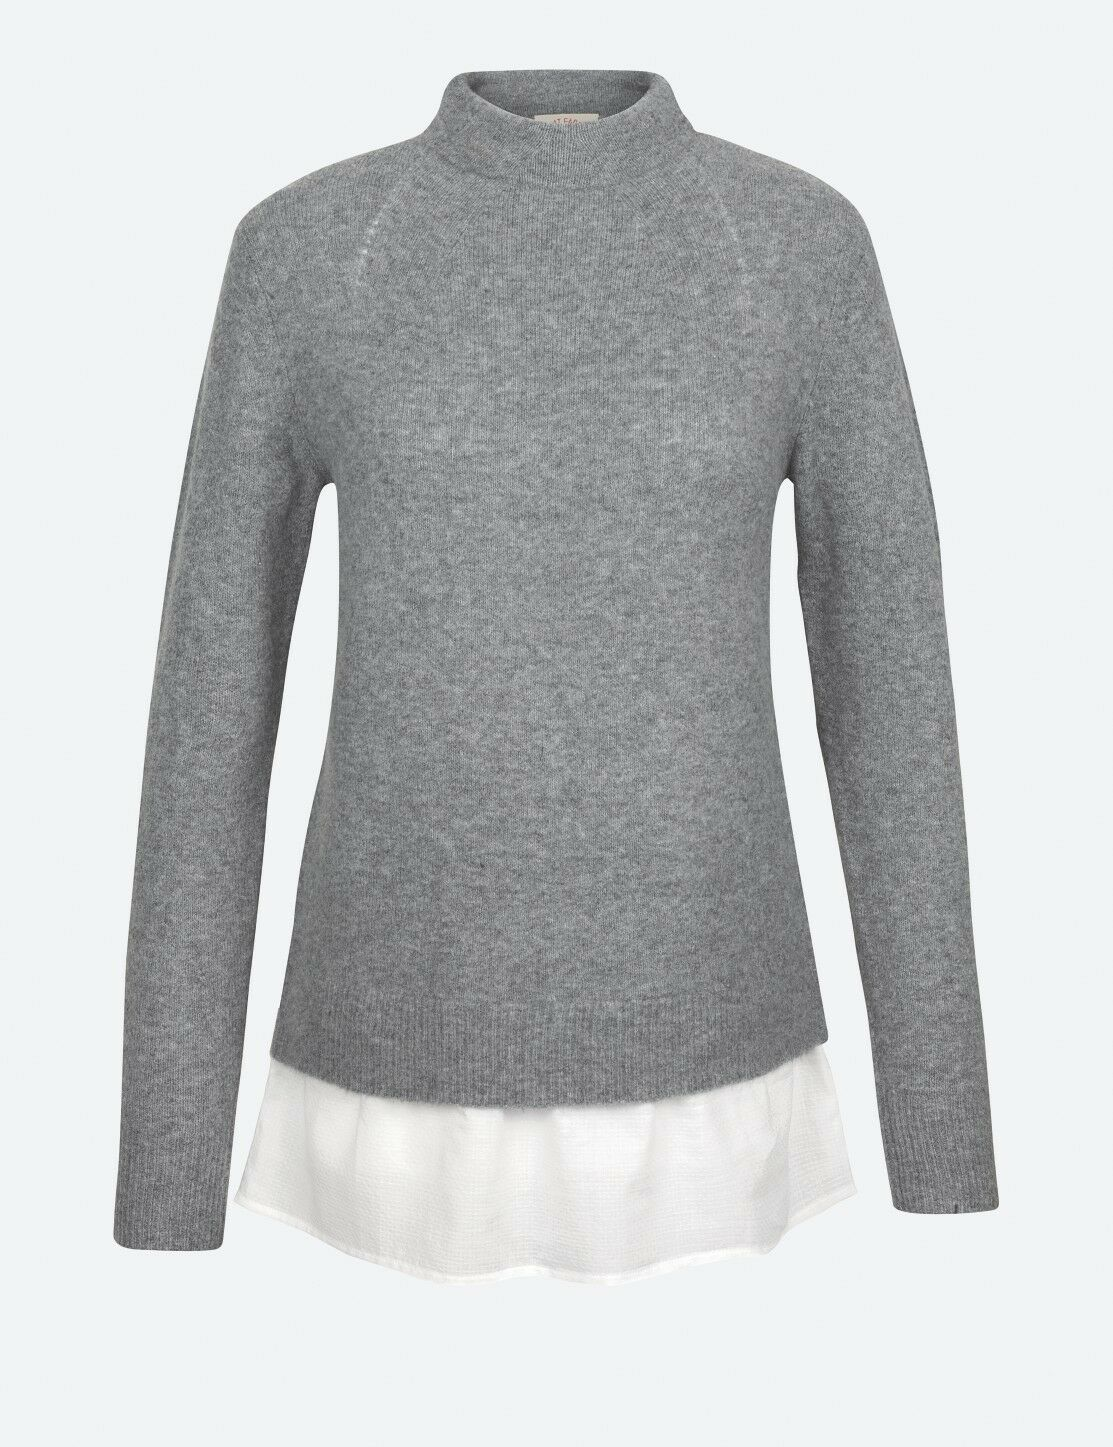 Fat Face - Women's - Saskia Jumper - Grey - 46% Acrylic - BNWT